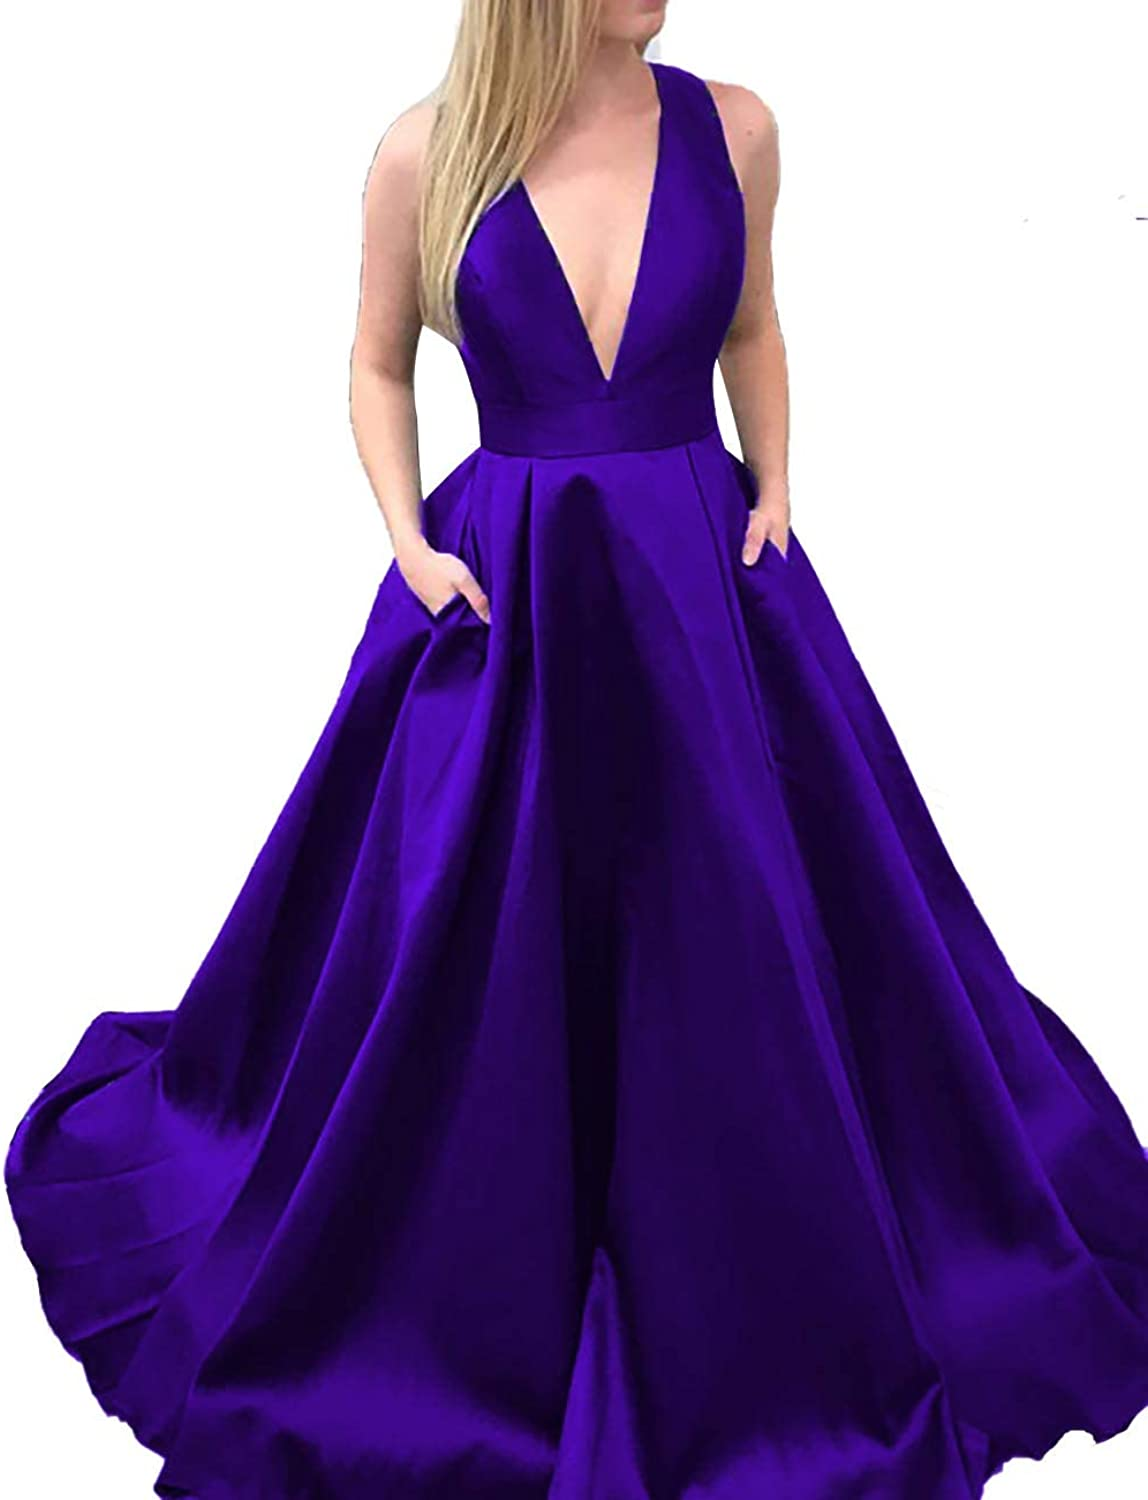 Scarisee Womens Formal V Evening Prom Dress Pockets Wedding Party Gowns BowSA135